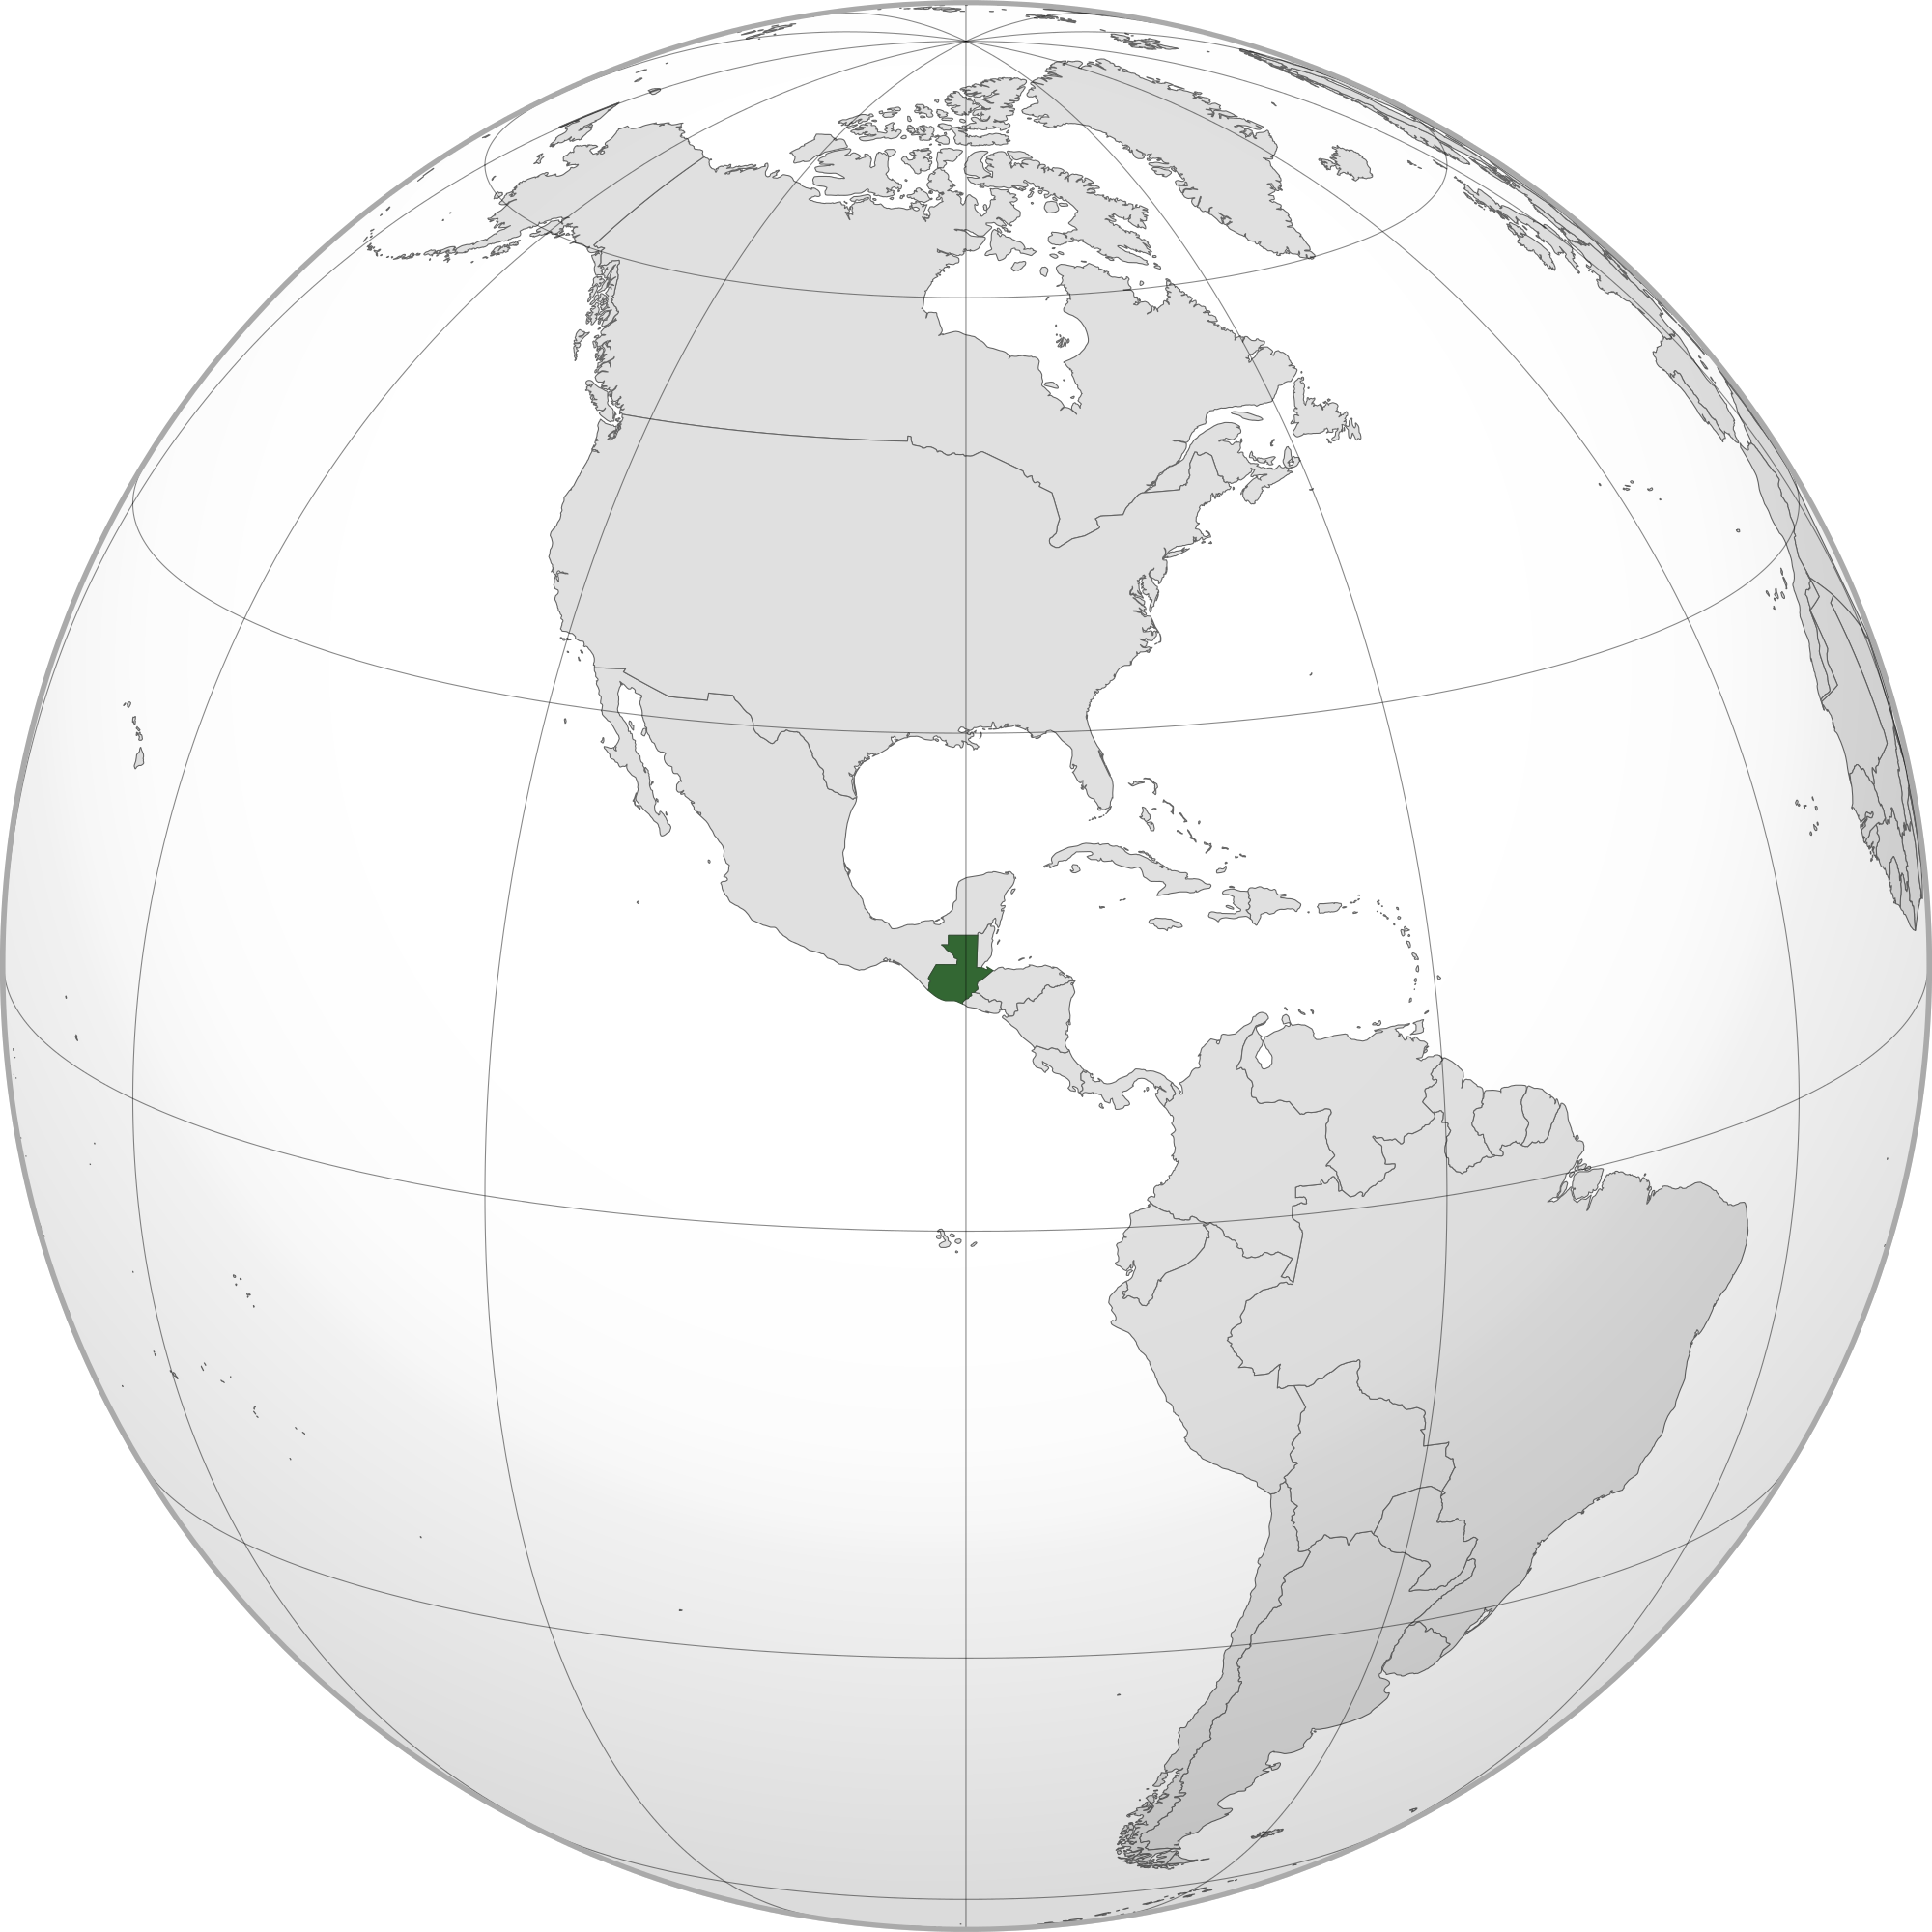 Location of the Guatemala in the World Map